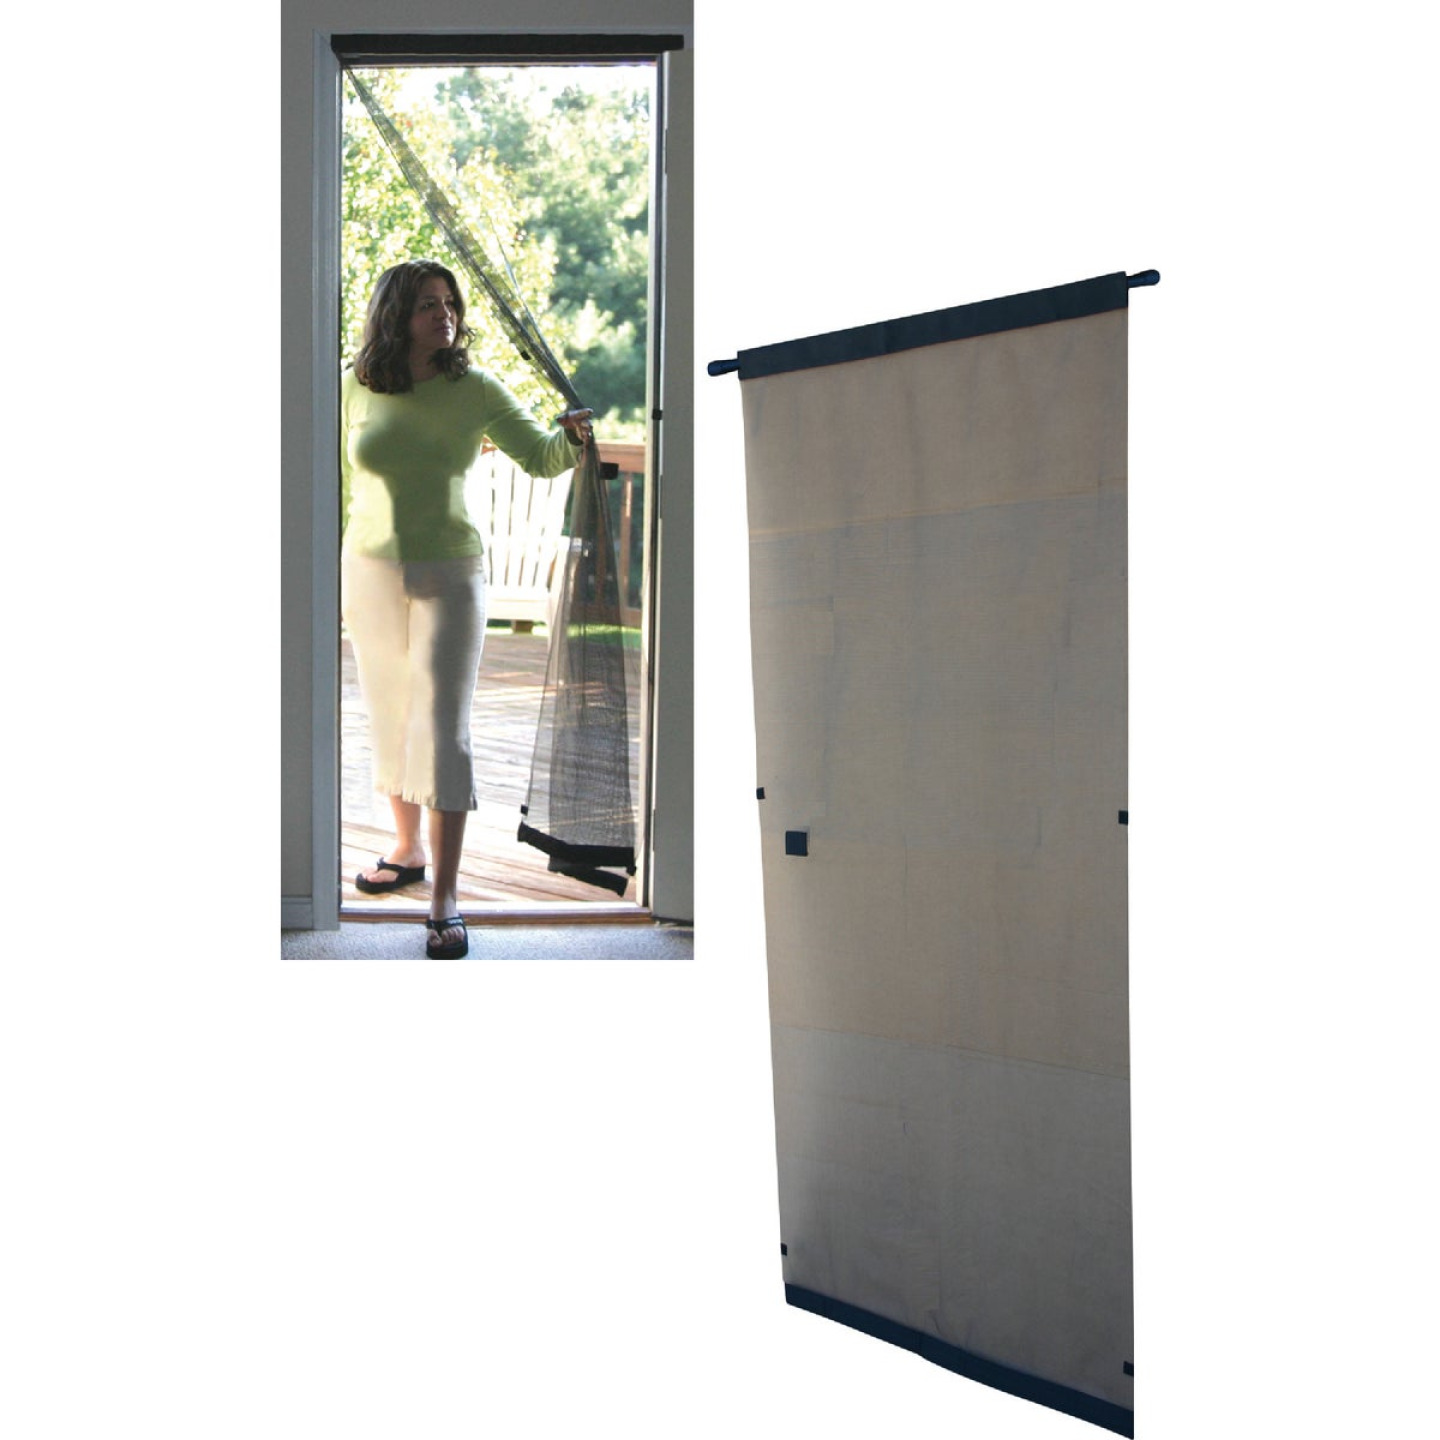 Snavely Kimberly Bay 37-1/2 In. W x 81 In. H Single Instant Door Screen Image 1